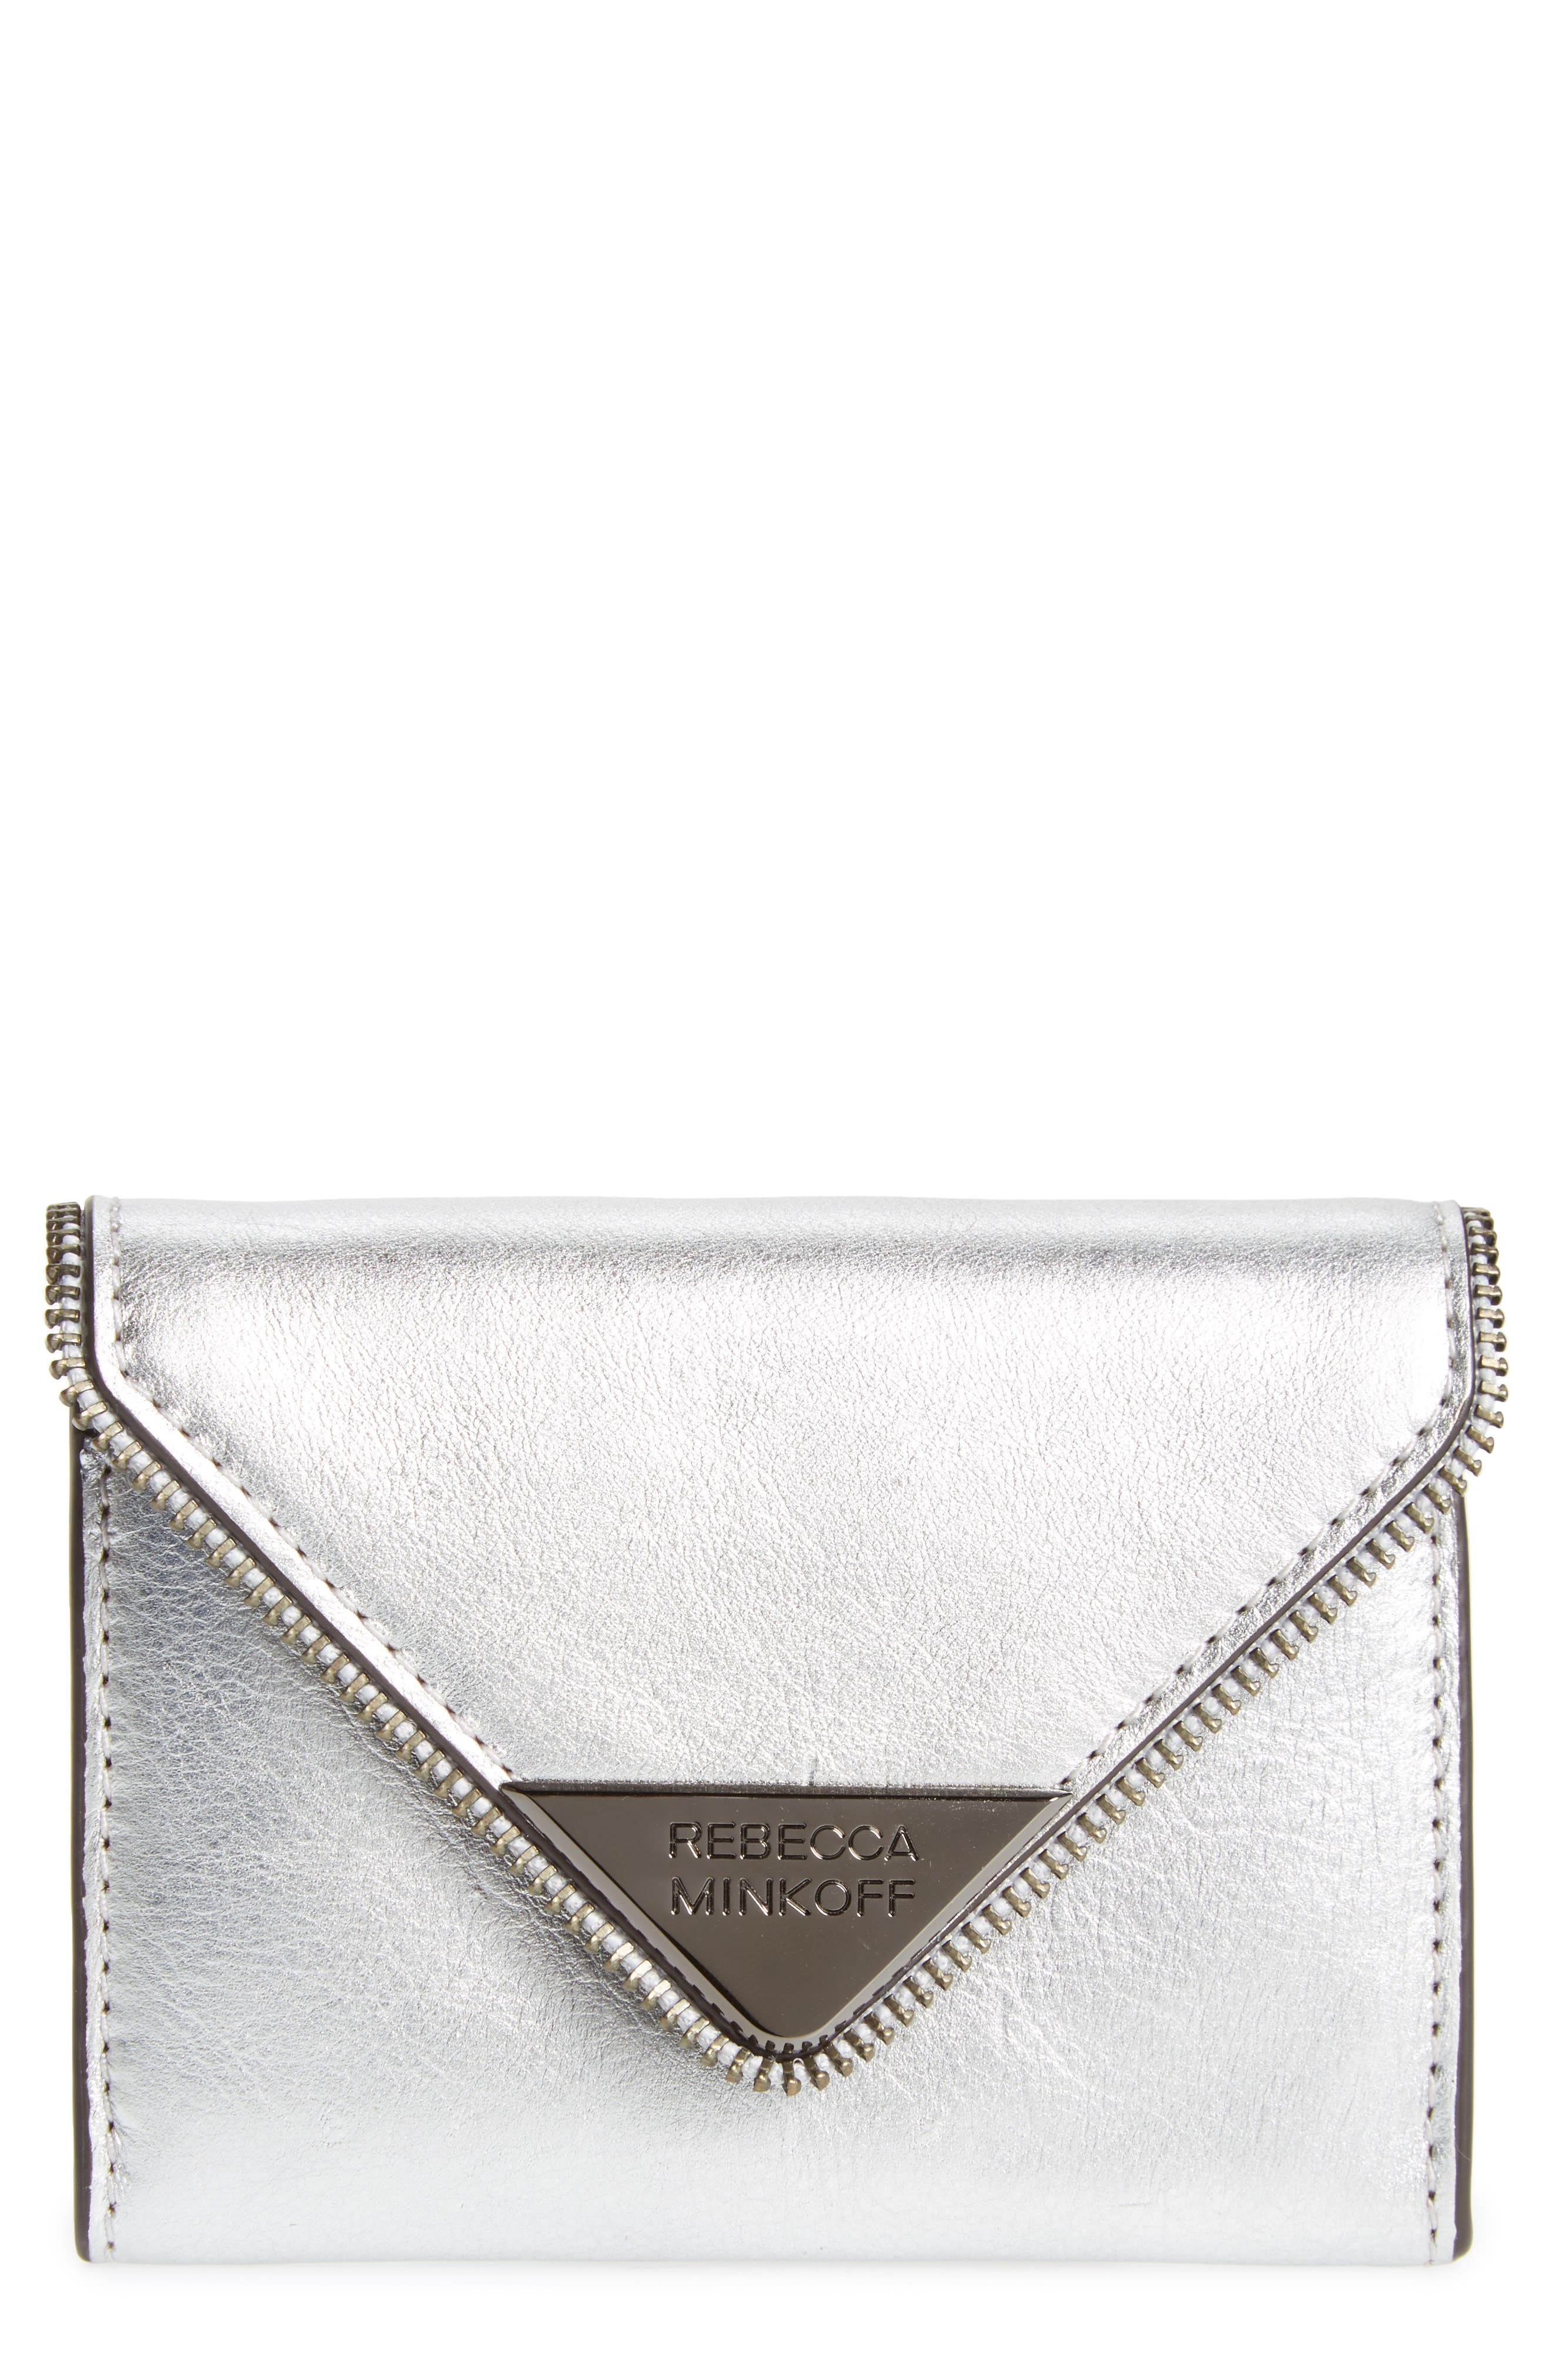 Molly Metro Metallic Leather Wallet,                             Main thumbnail 1, color,                             040